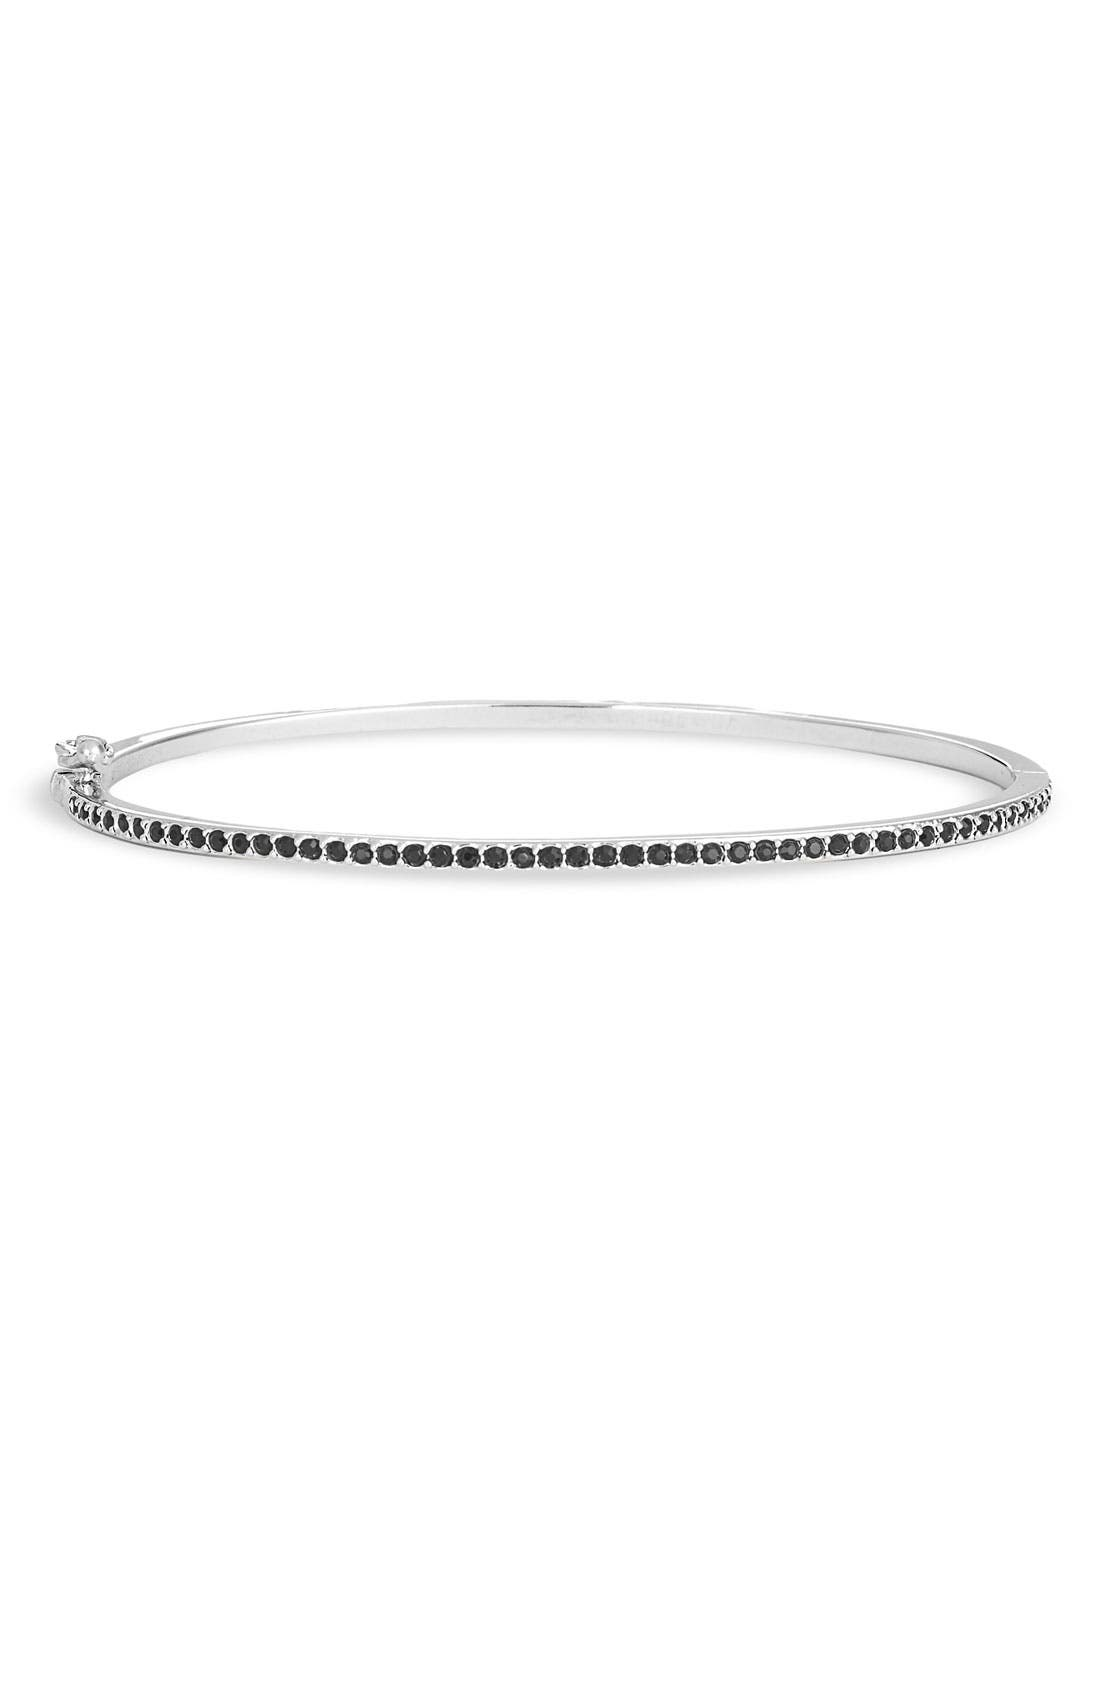 Alternate Image 1 Selected - Judith Jack Crystal Hinged Bangle